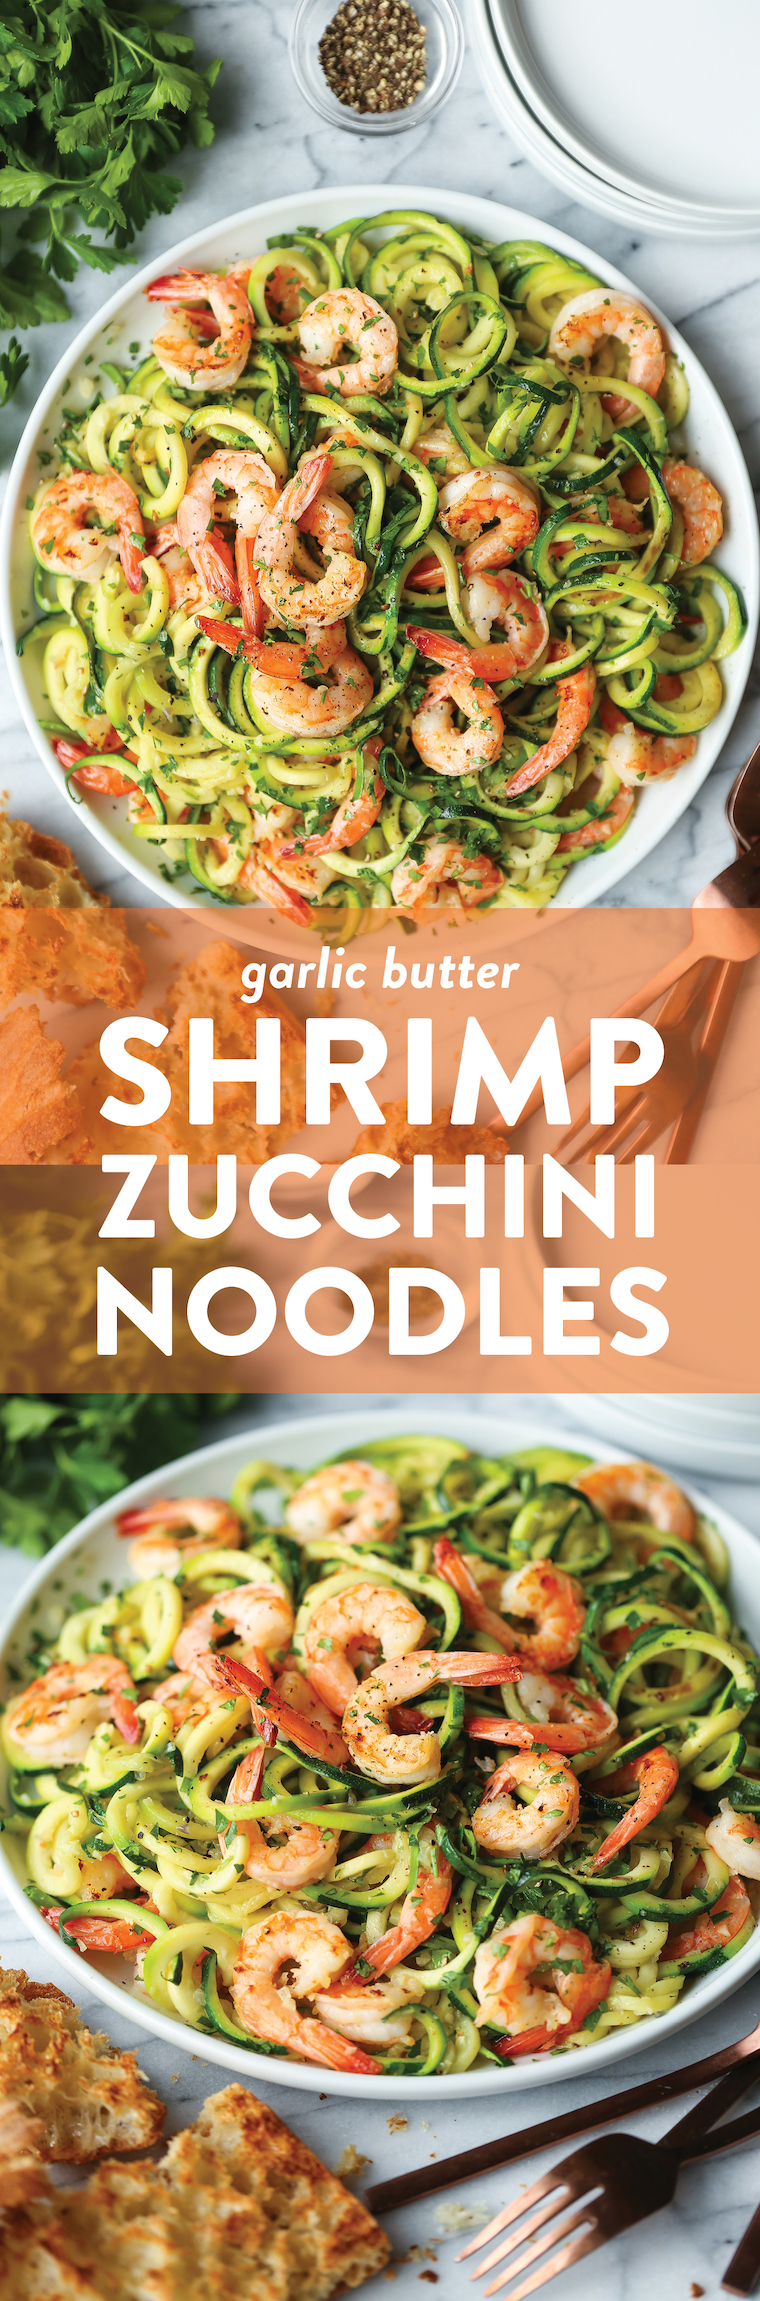 Garlic Butter Shrimp Zucchini Noodles